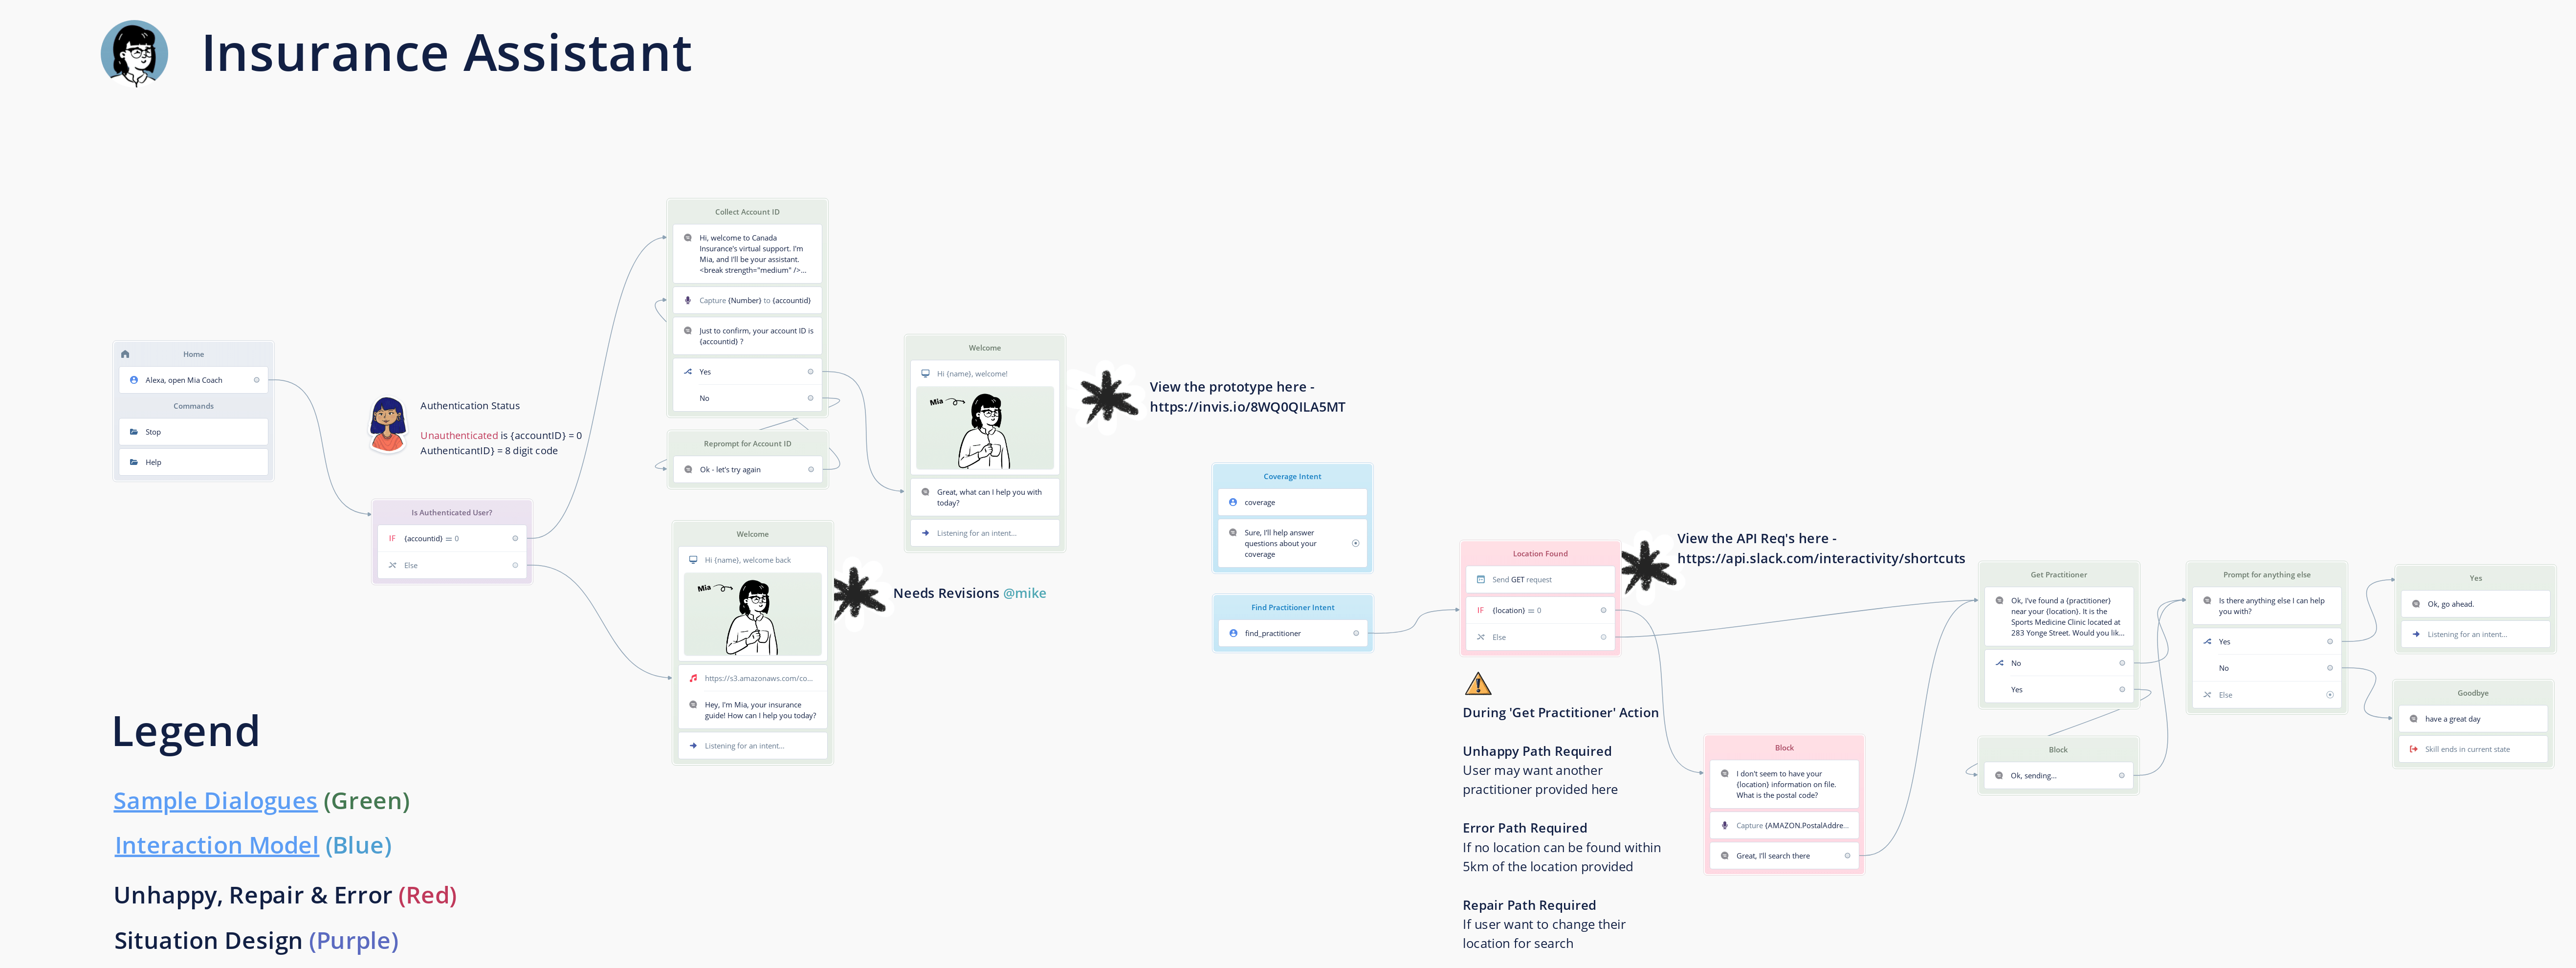 insurance assistant workflow image